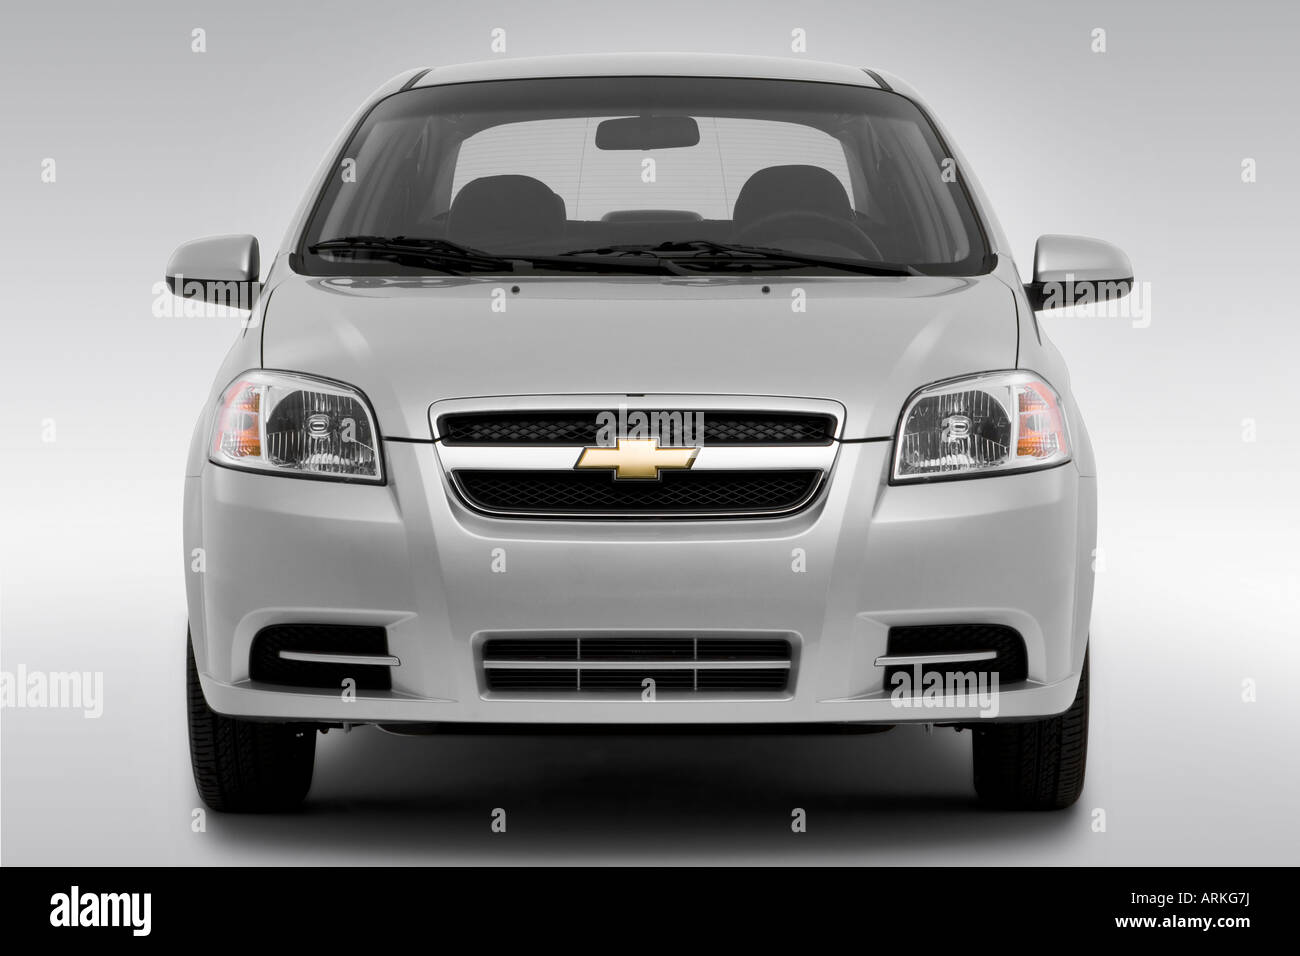 2008 Chevrolet Aveo Ls In Silver Low Wide Front Stock Photo Alamy